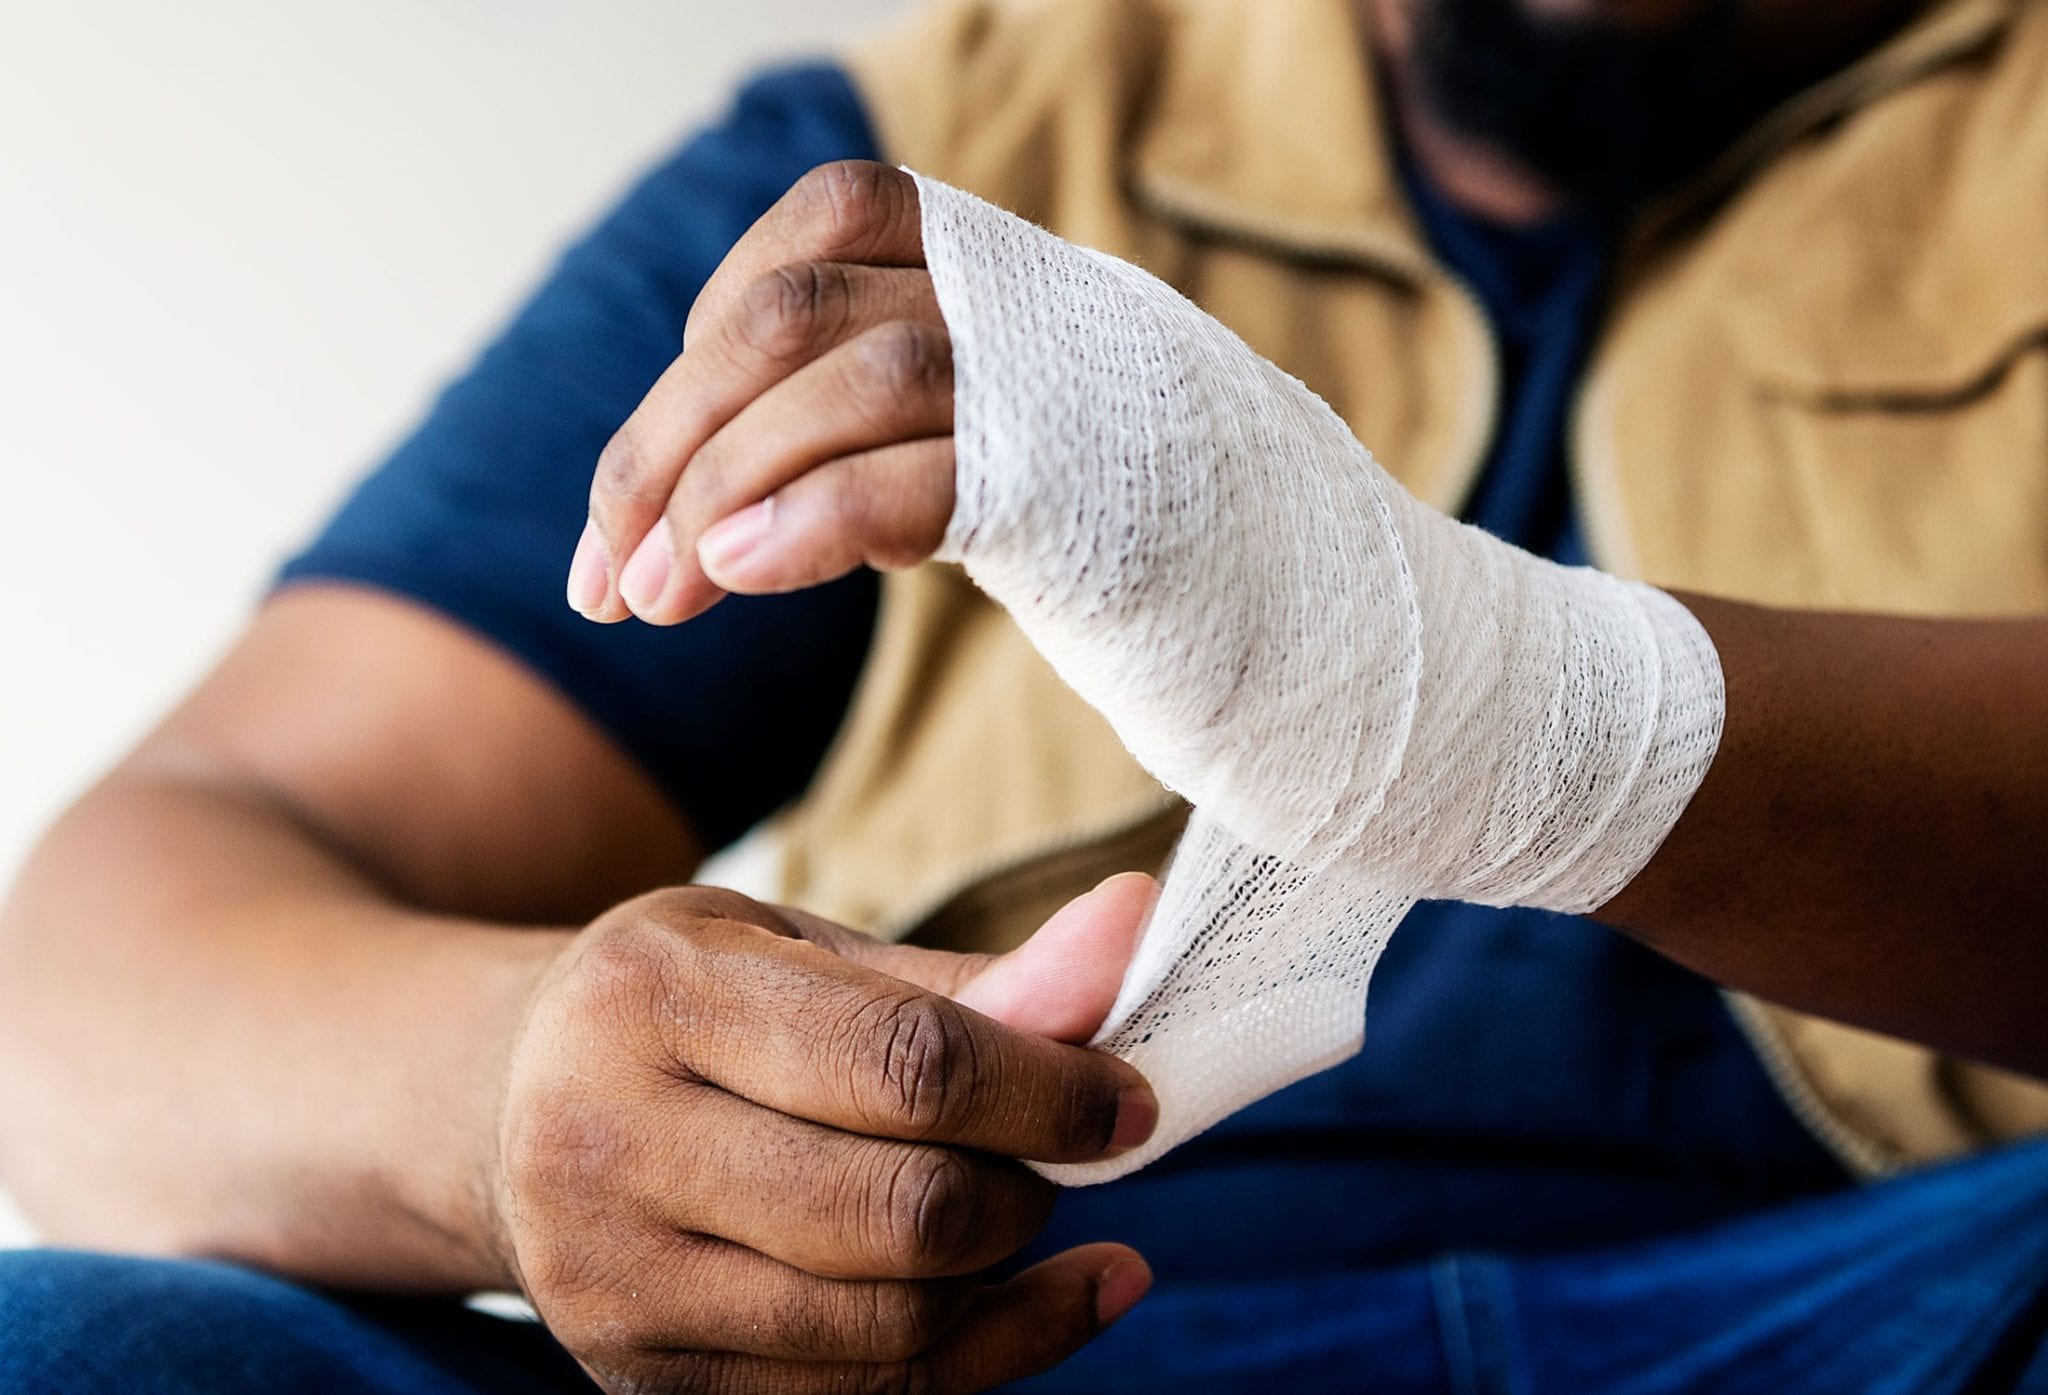 Man With Injured Hand Wrapped In Bandage Stock Photo